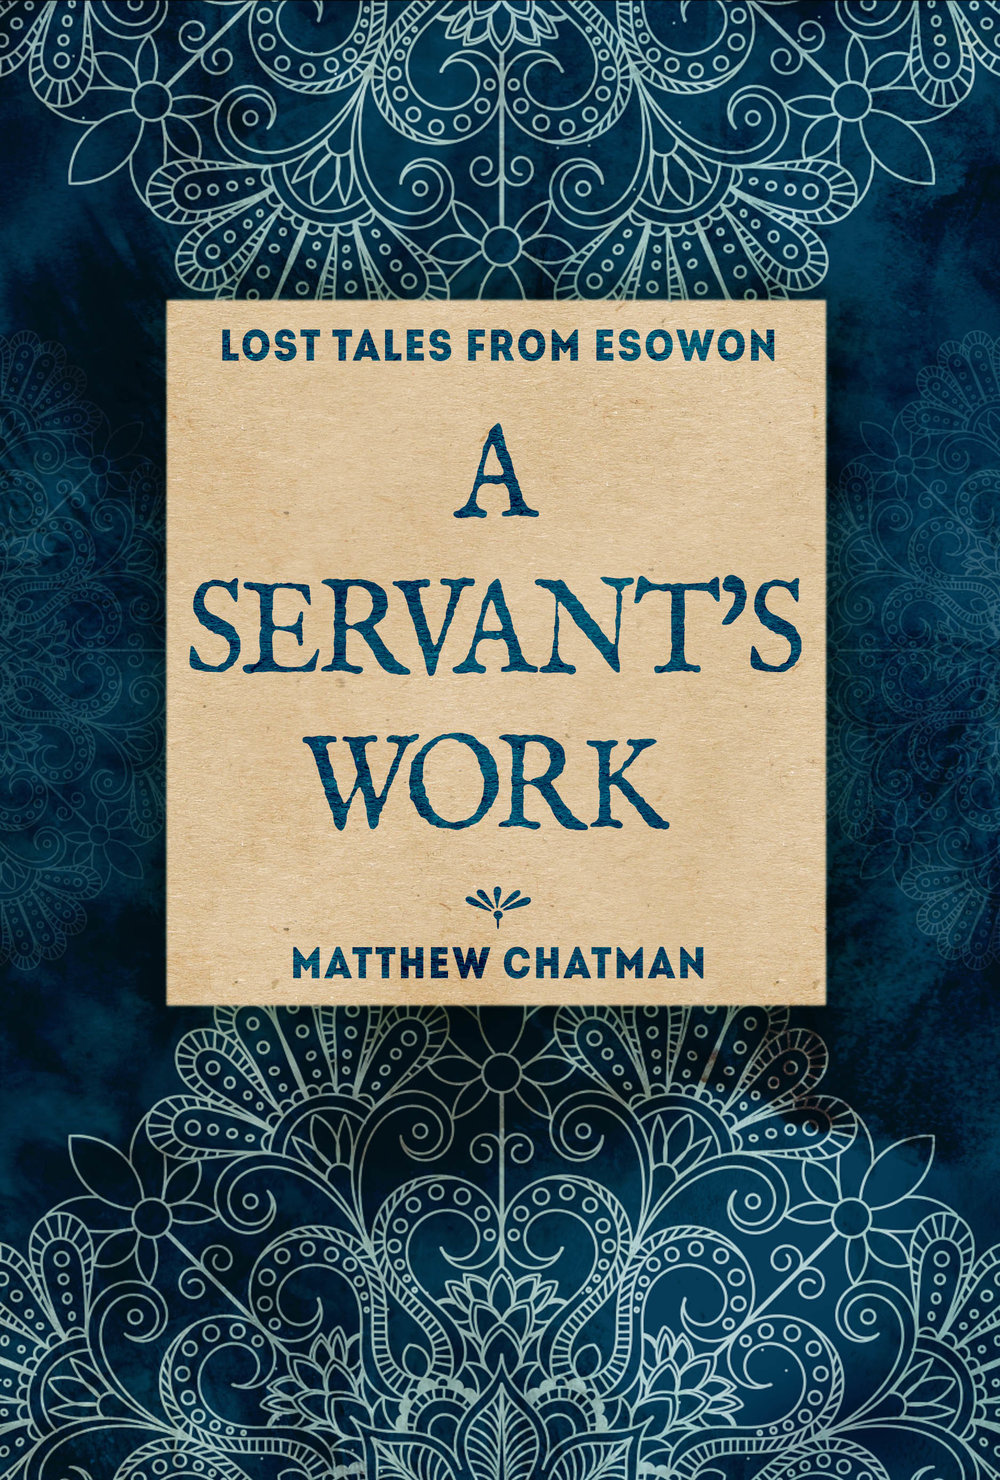 A SERVANT'S WORK - AMANA HAS A SPECIAL GIFT TO SEE INTO THE FUTURE. BUT ONE DAY SOMETHING GOES HORRIBLY WRONG … SOMETHING HE NEVER FORESAW.◦ AMAZON ◦ GOODREADS ◦ FREE eBOOK